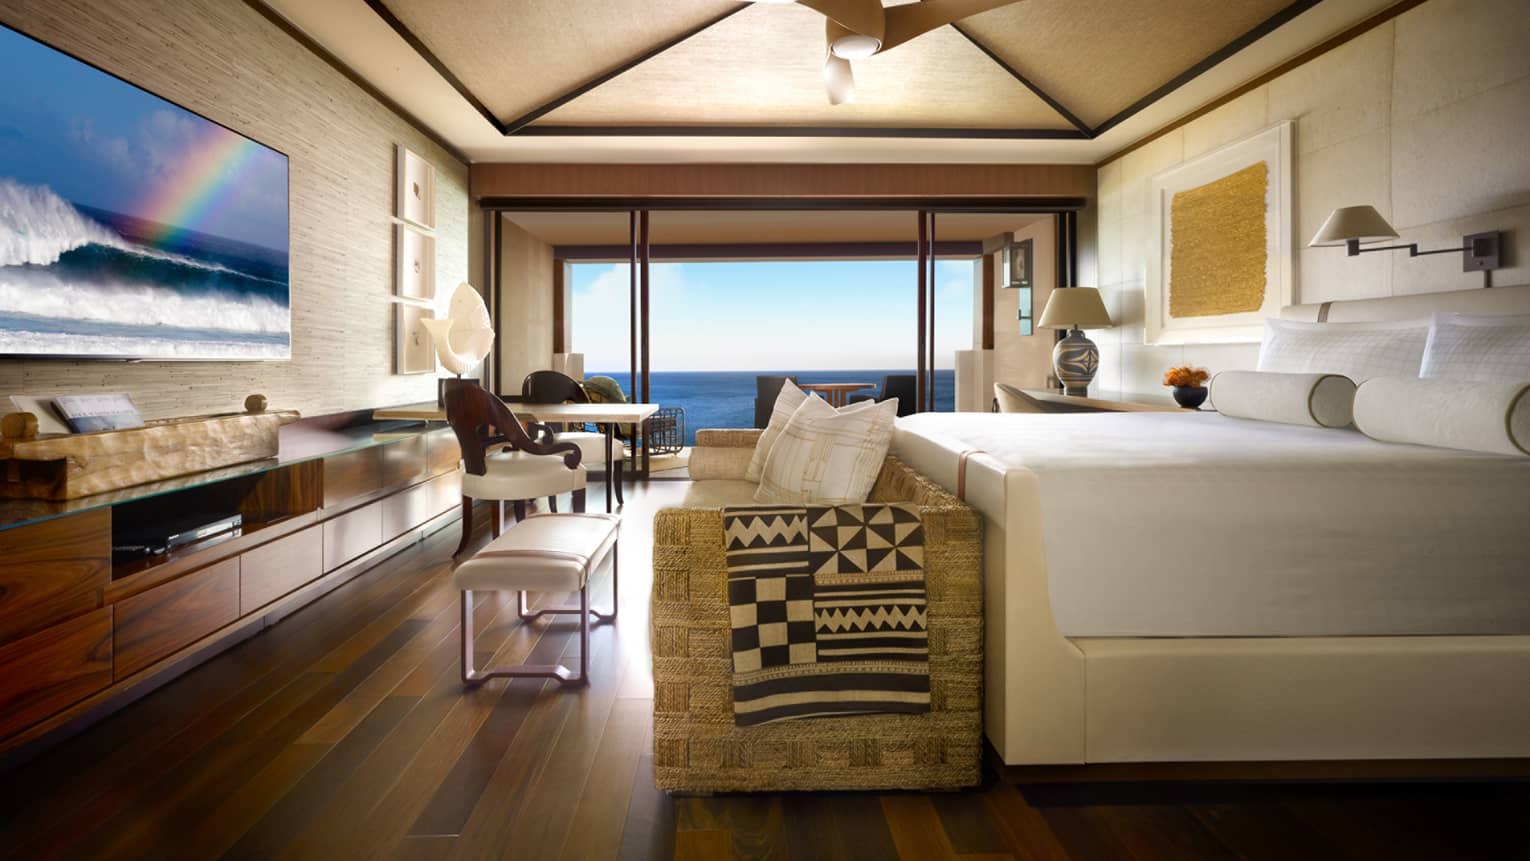 Prime oceanfront room bed with white frame, rattan sofa, long wood dresser, flat-screen tv with rainbow, glass balcony window